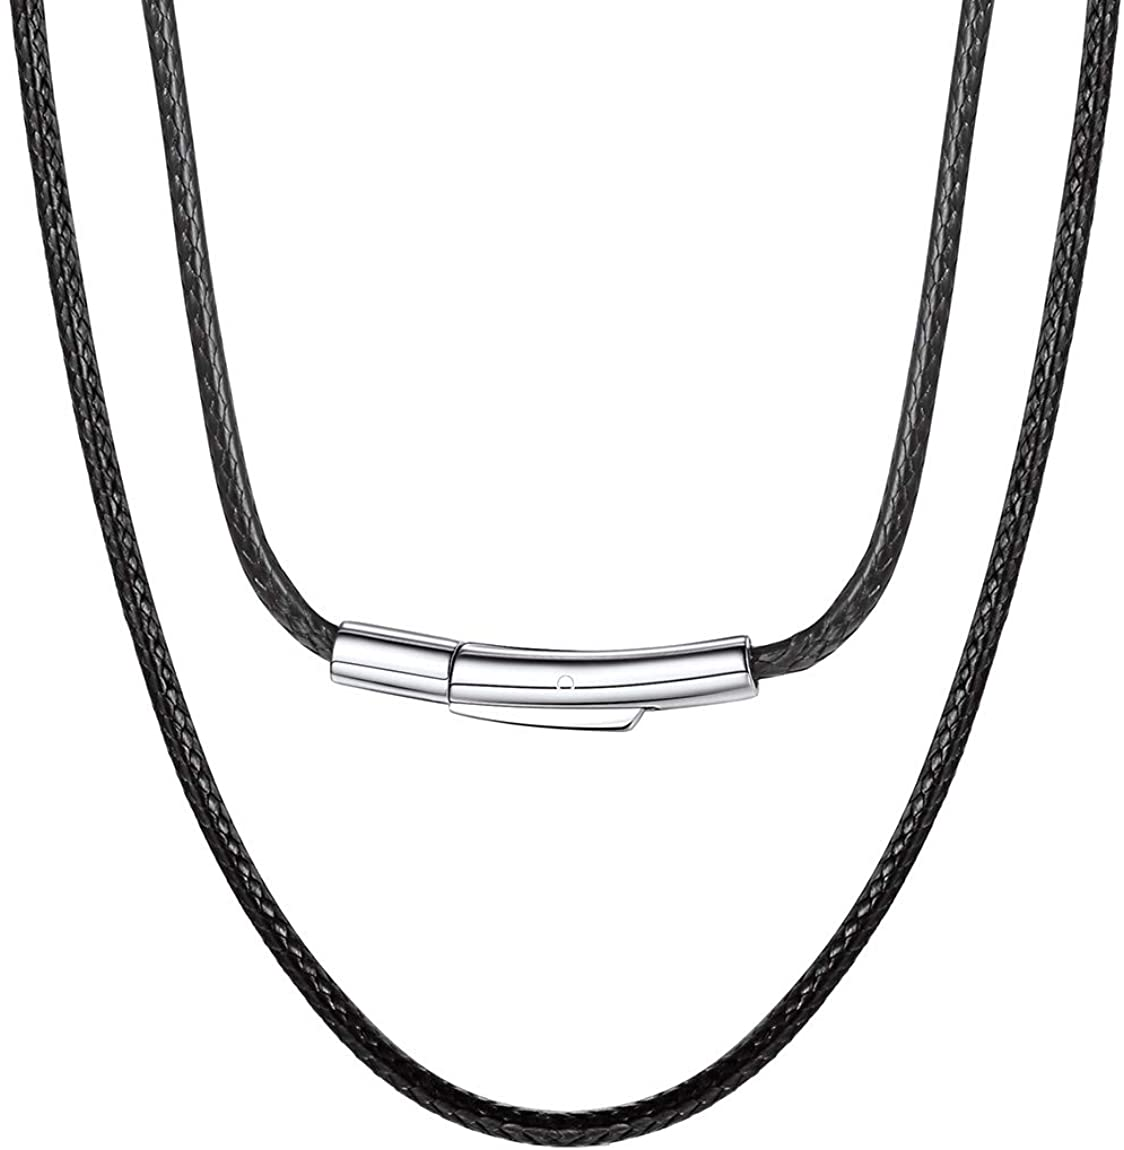 """ChainsPro Can Engrave, Waterproof Braided Leather Necklace Wax Rope Chain, 2/3mm Width Replacement Chain, with Durable Snap Clasp, 16""""18"""" 20"""" 22"""" 24"""" 26"""" 28"""" 30""""-(Send Gift Box)"""